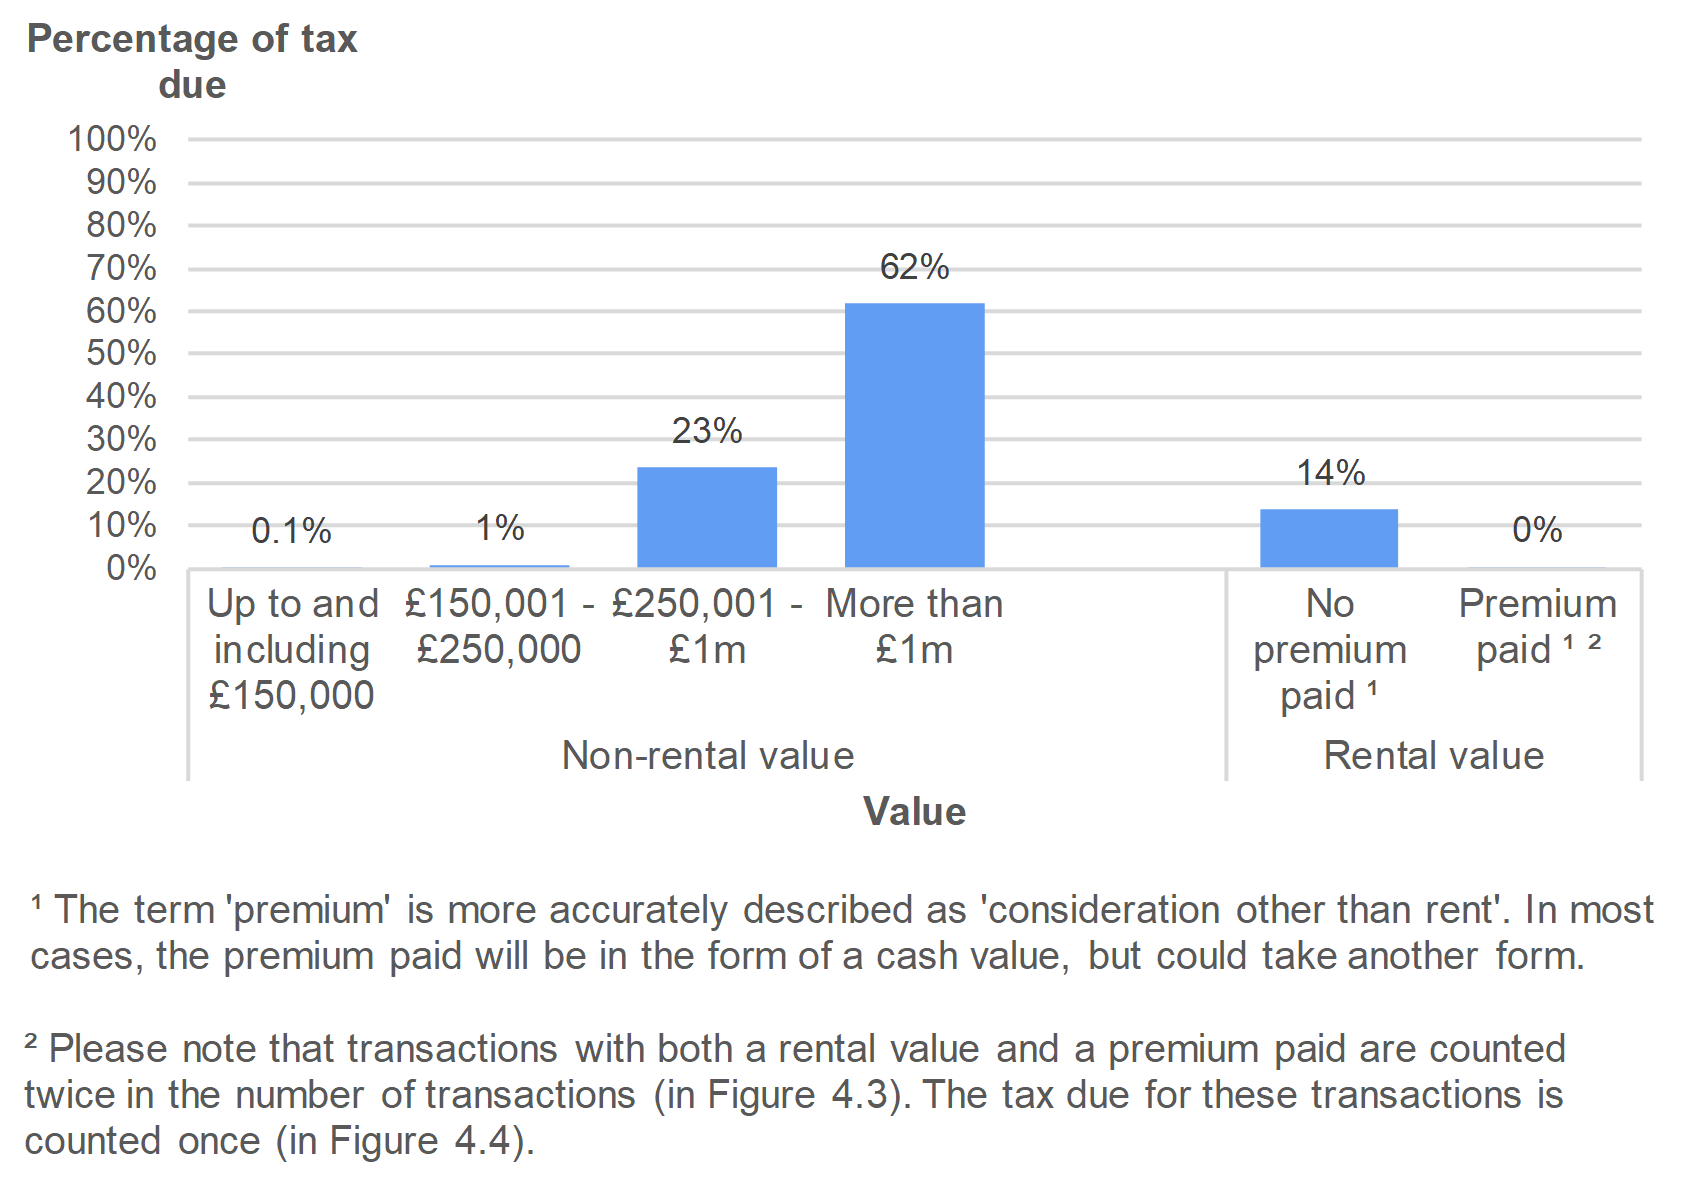 Figure 4.4 shows the amount of tax due on non-residential transactions, by value of the property. Data is presented as the percentage of transactions and relates to transactions effective in July to September 2019.